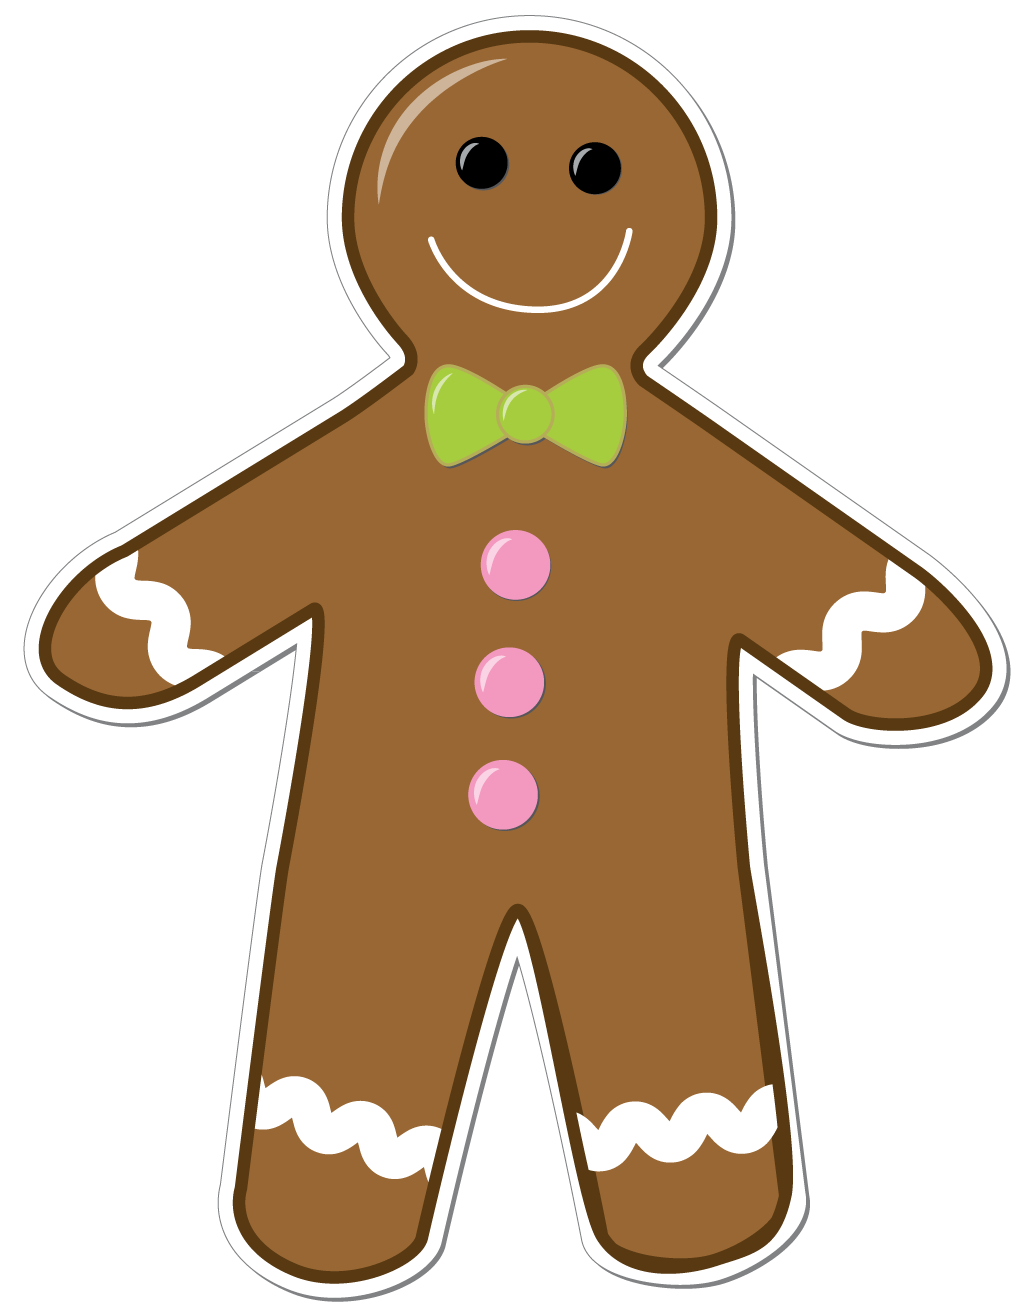 Displaying 18 Images For Gingerbread Man-Displaying 18 Images For Gingerbread Man Border-7